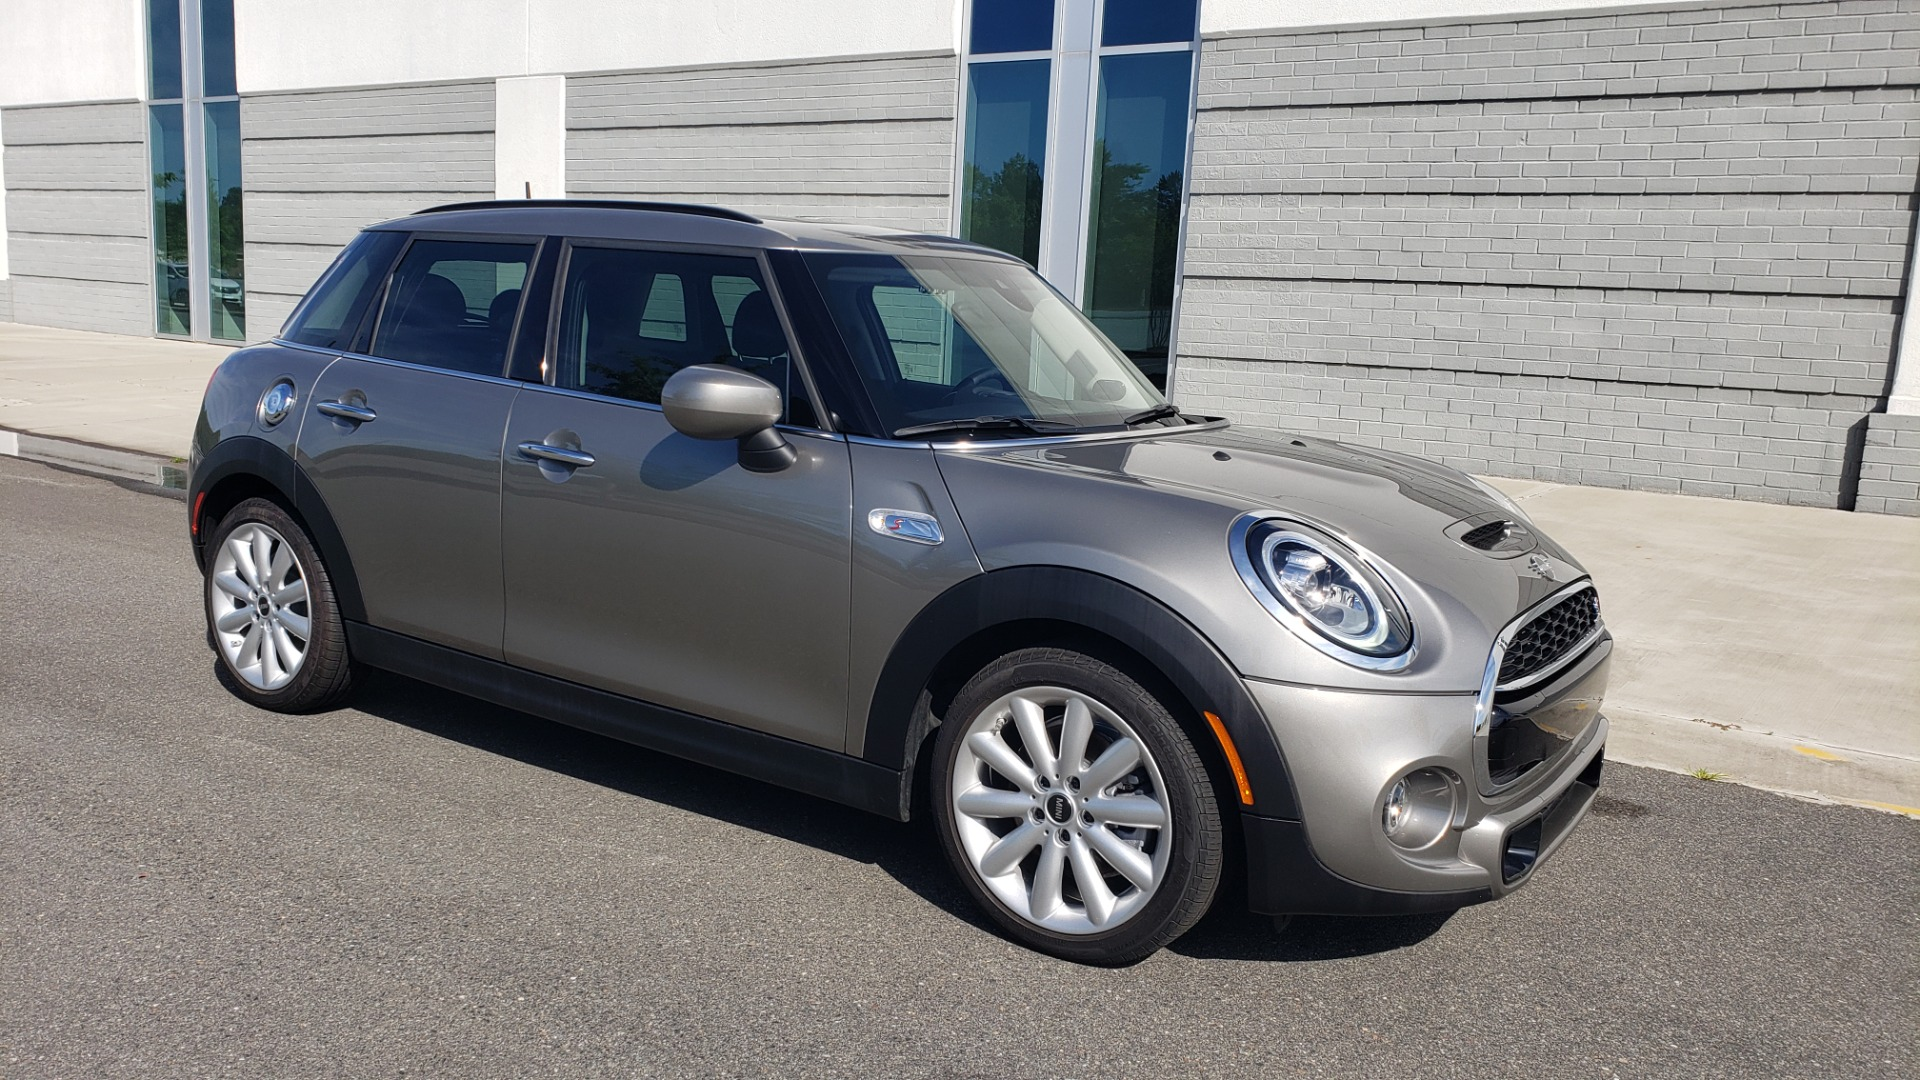 Used 2020 MINI HARDTOP 4 DOOR COOPER S / NAV / SUNROOF / AUTO / H/K SND / REARVIEW for sale $28,495 at Formula Imports in Charlotte NC 28227 9